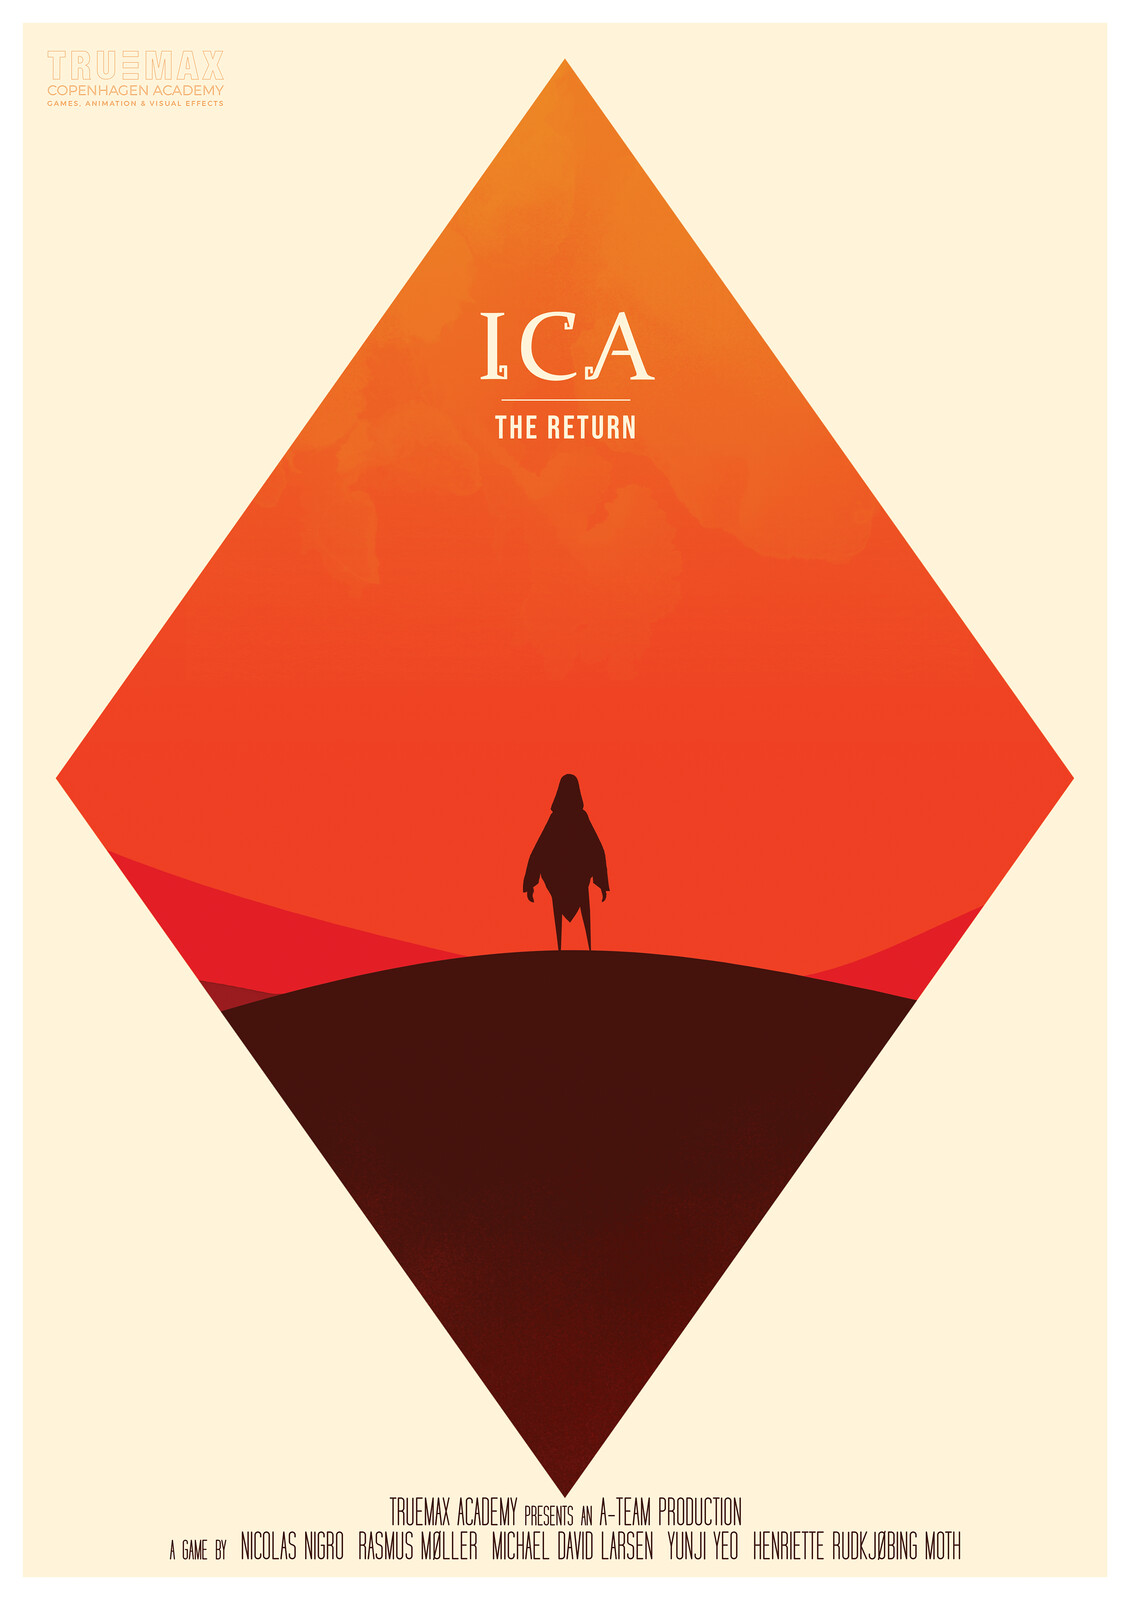 Extra Poster for Ica. Made in Photoshop.